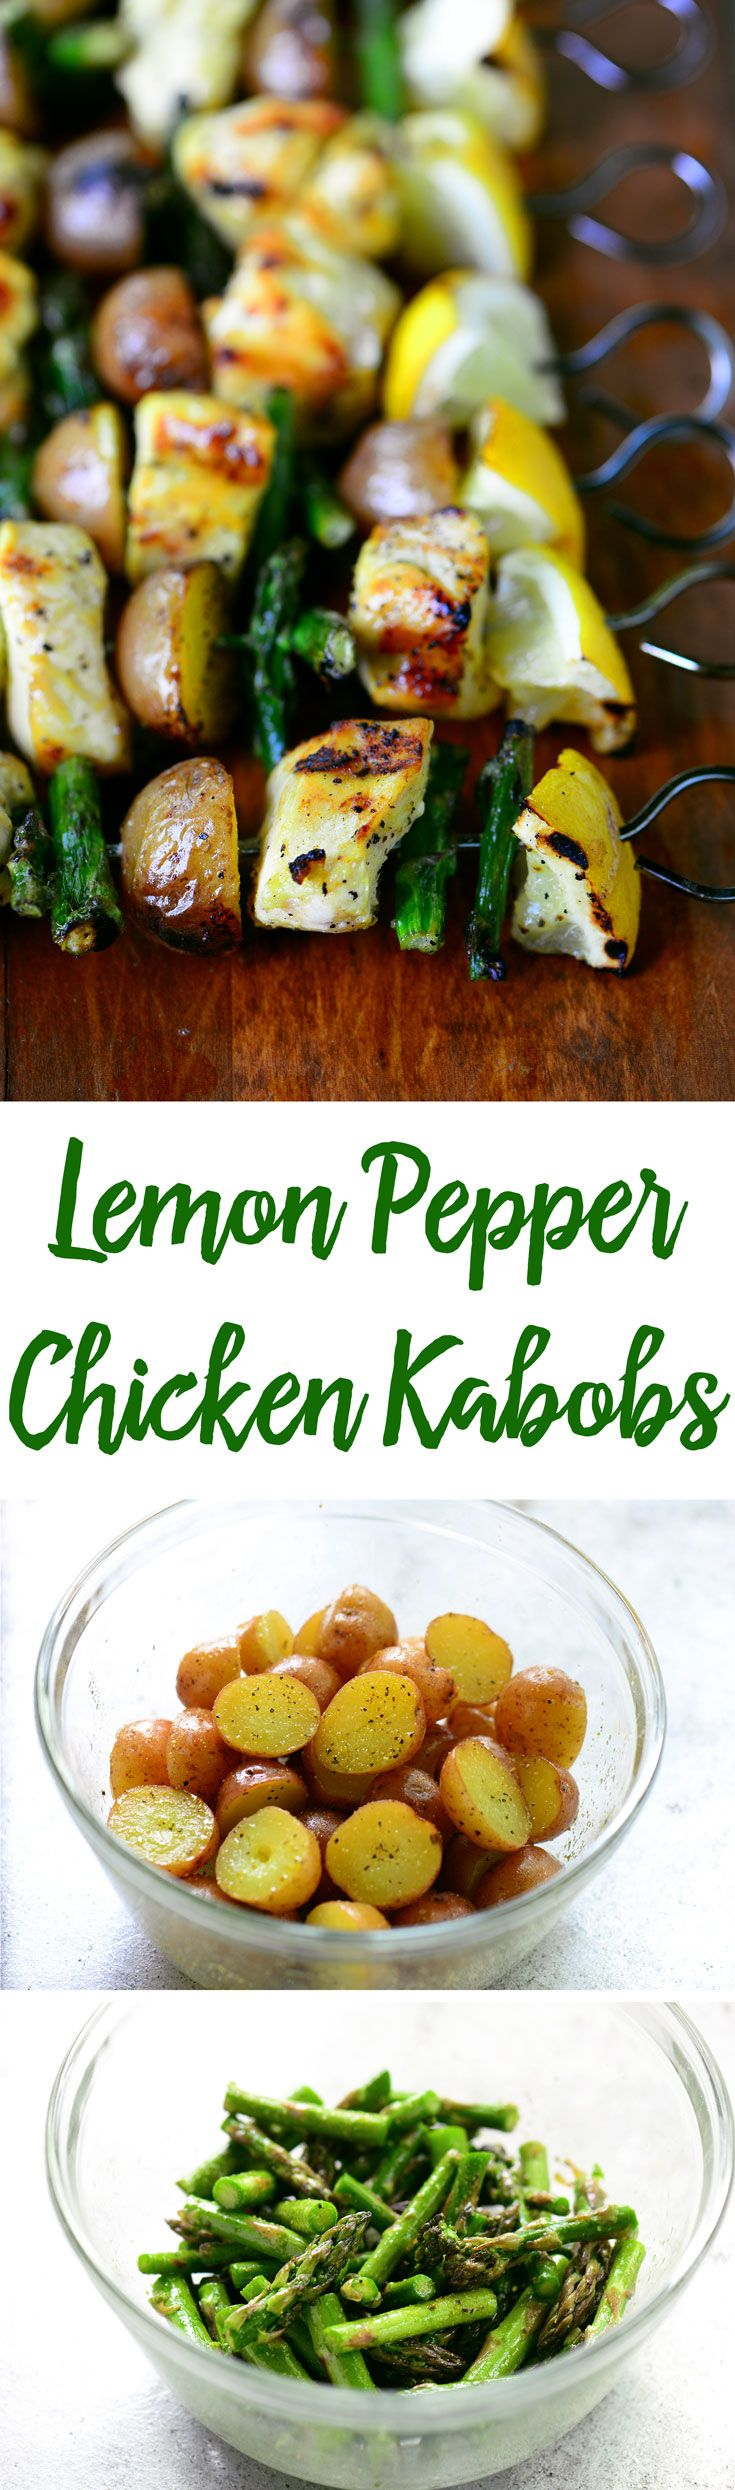 How long do i grill chicken kabobs - Lemon Pepper Chicken Kabobs